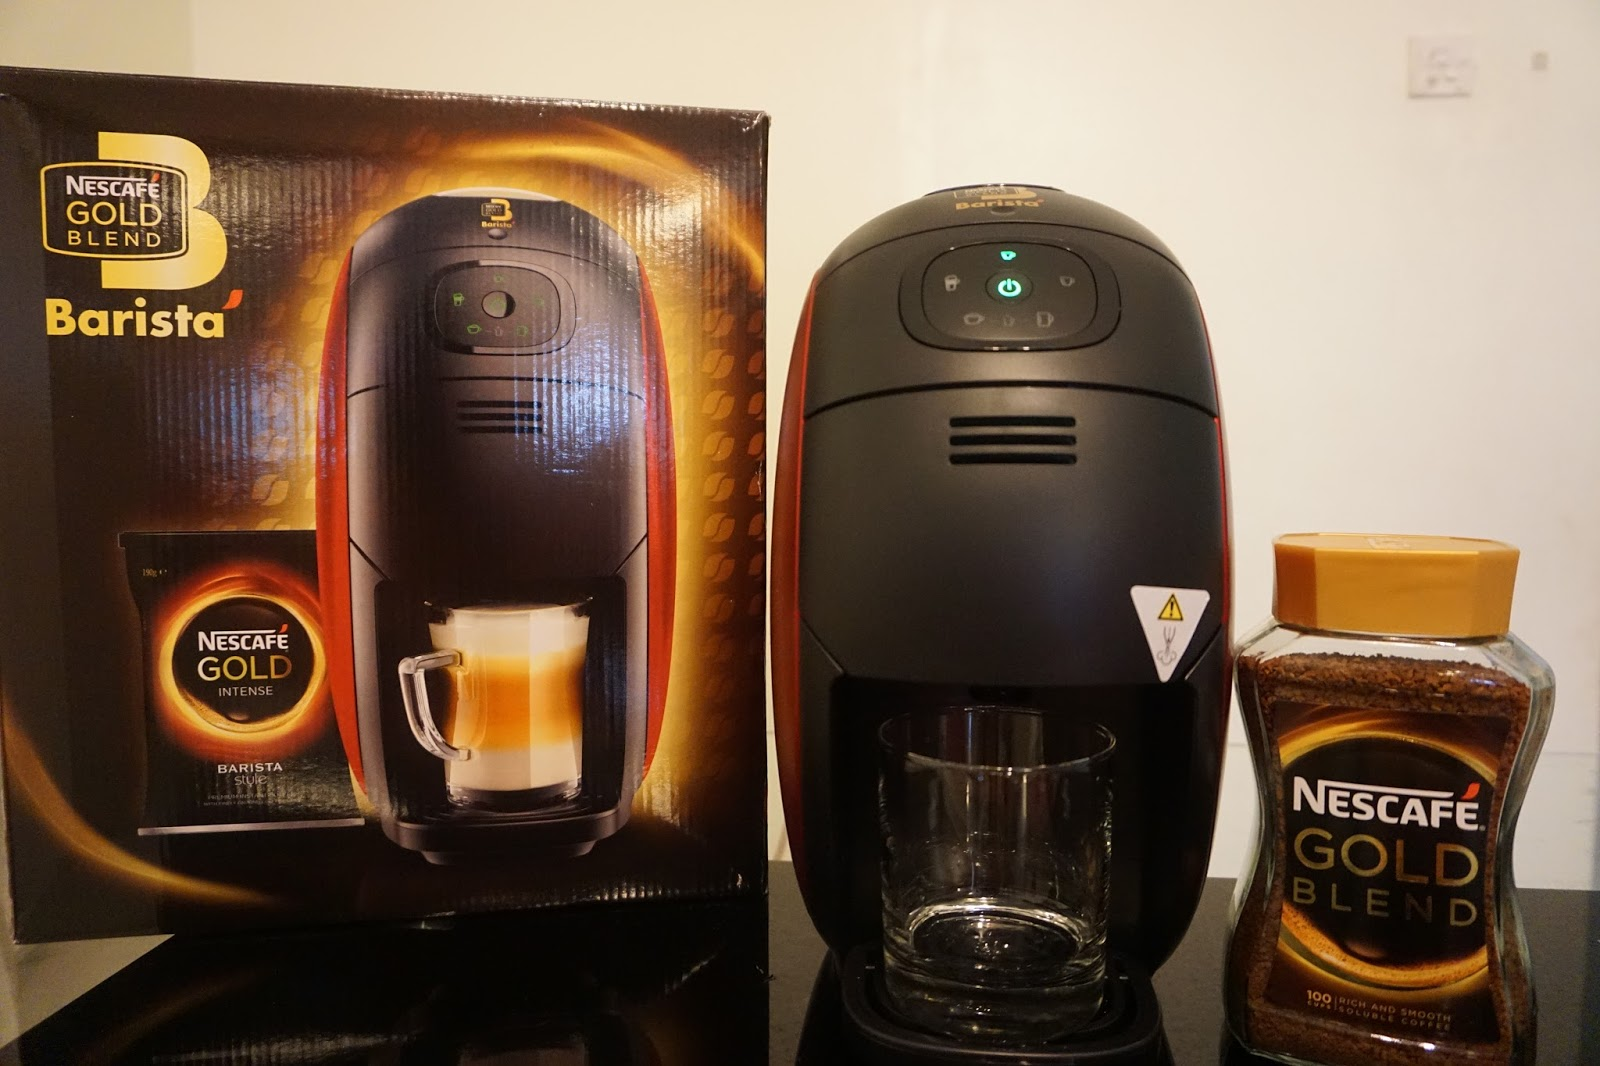 5 little angels nescafe gold blend barista with involveasia